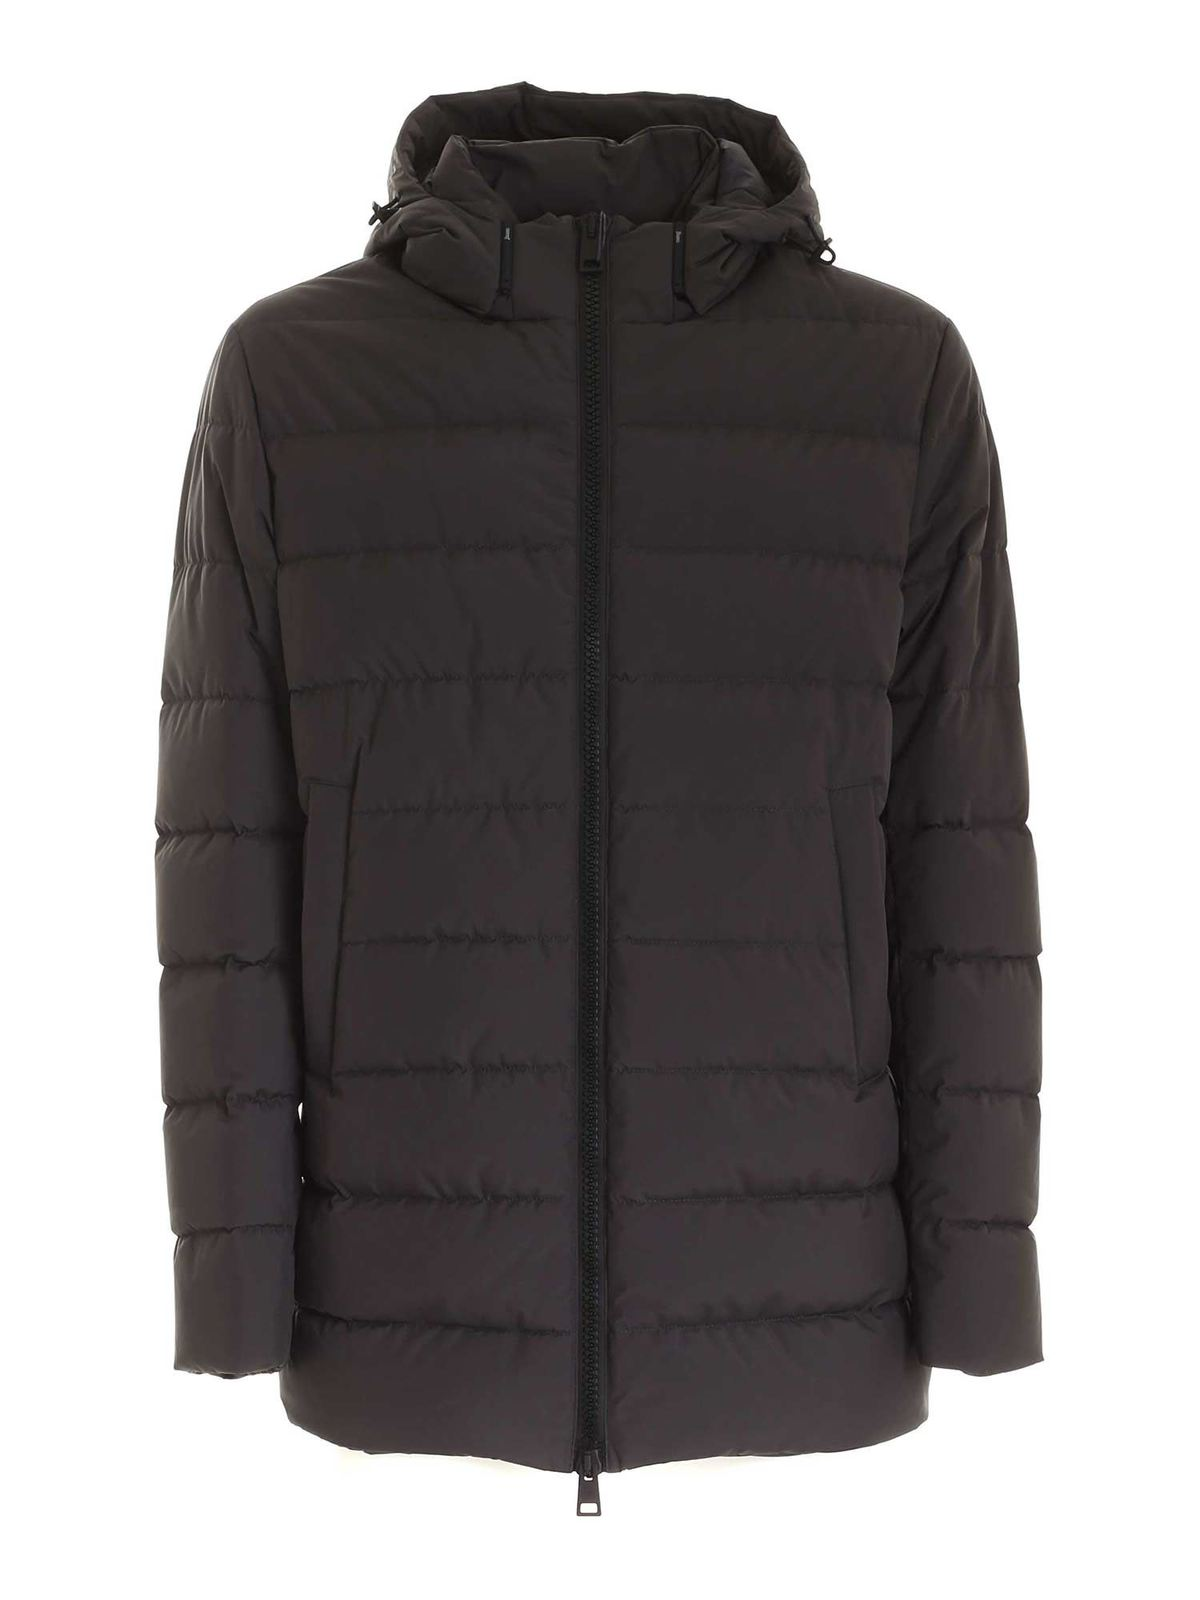 Herno Downs GORE-TEX INFINIUM ™ DOWN JACKET IN ANTHRACITE